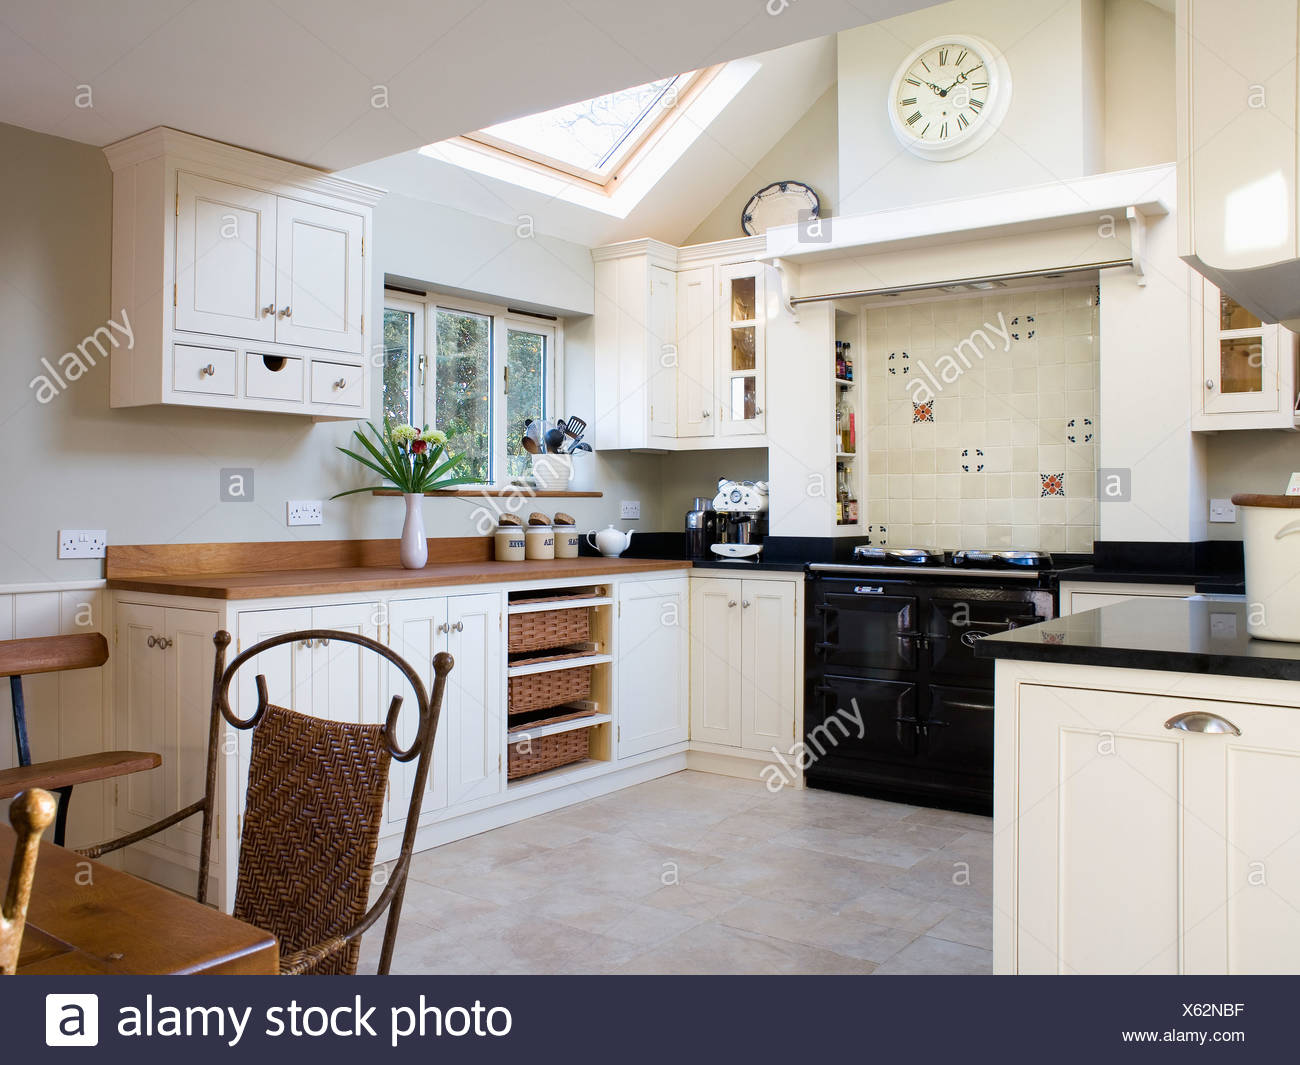 Neutral Appliances Extensions High Resolution Stock Photography And Images Alamy